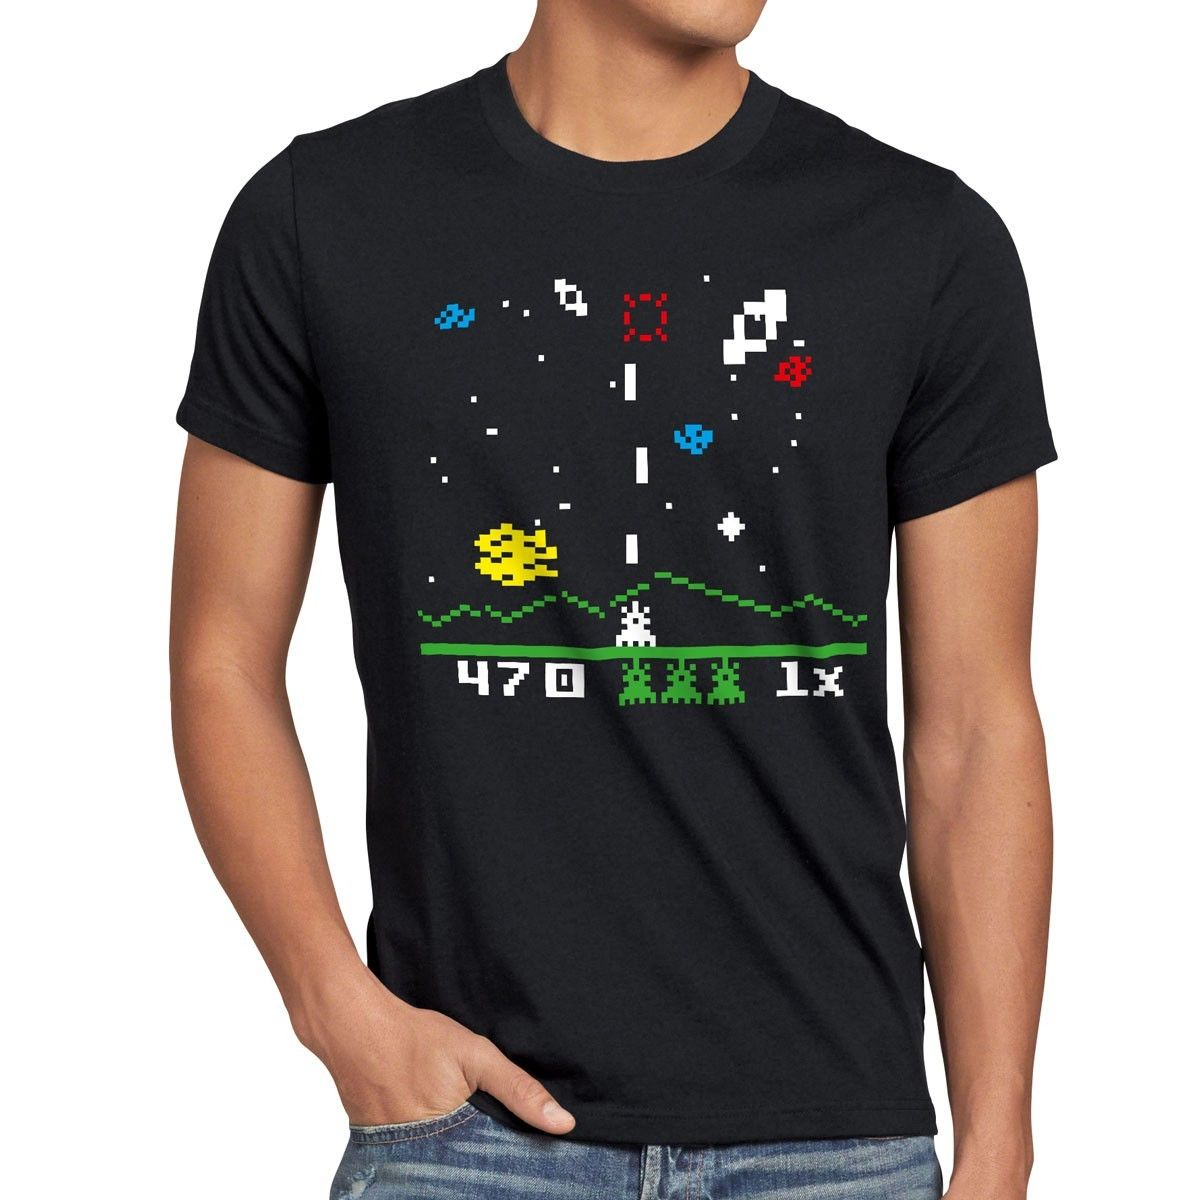 Invaders T-Shirt Big Sheldon Space bang astrosmash Cooper Game online 80s Theory Summer Short Sleeves Cotton Fashion t Shirt